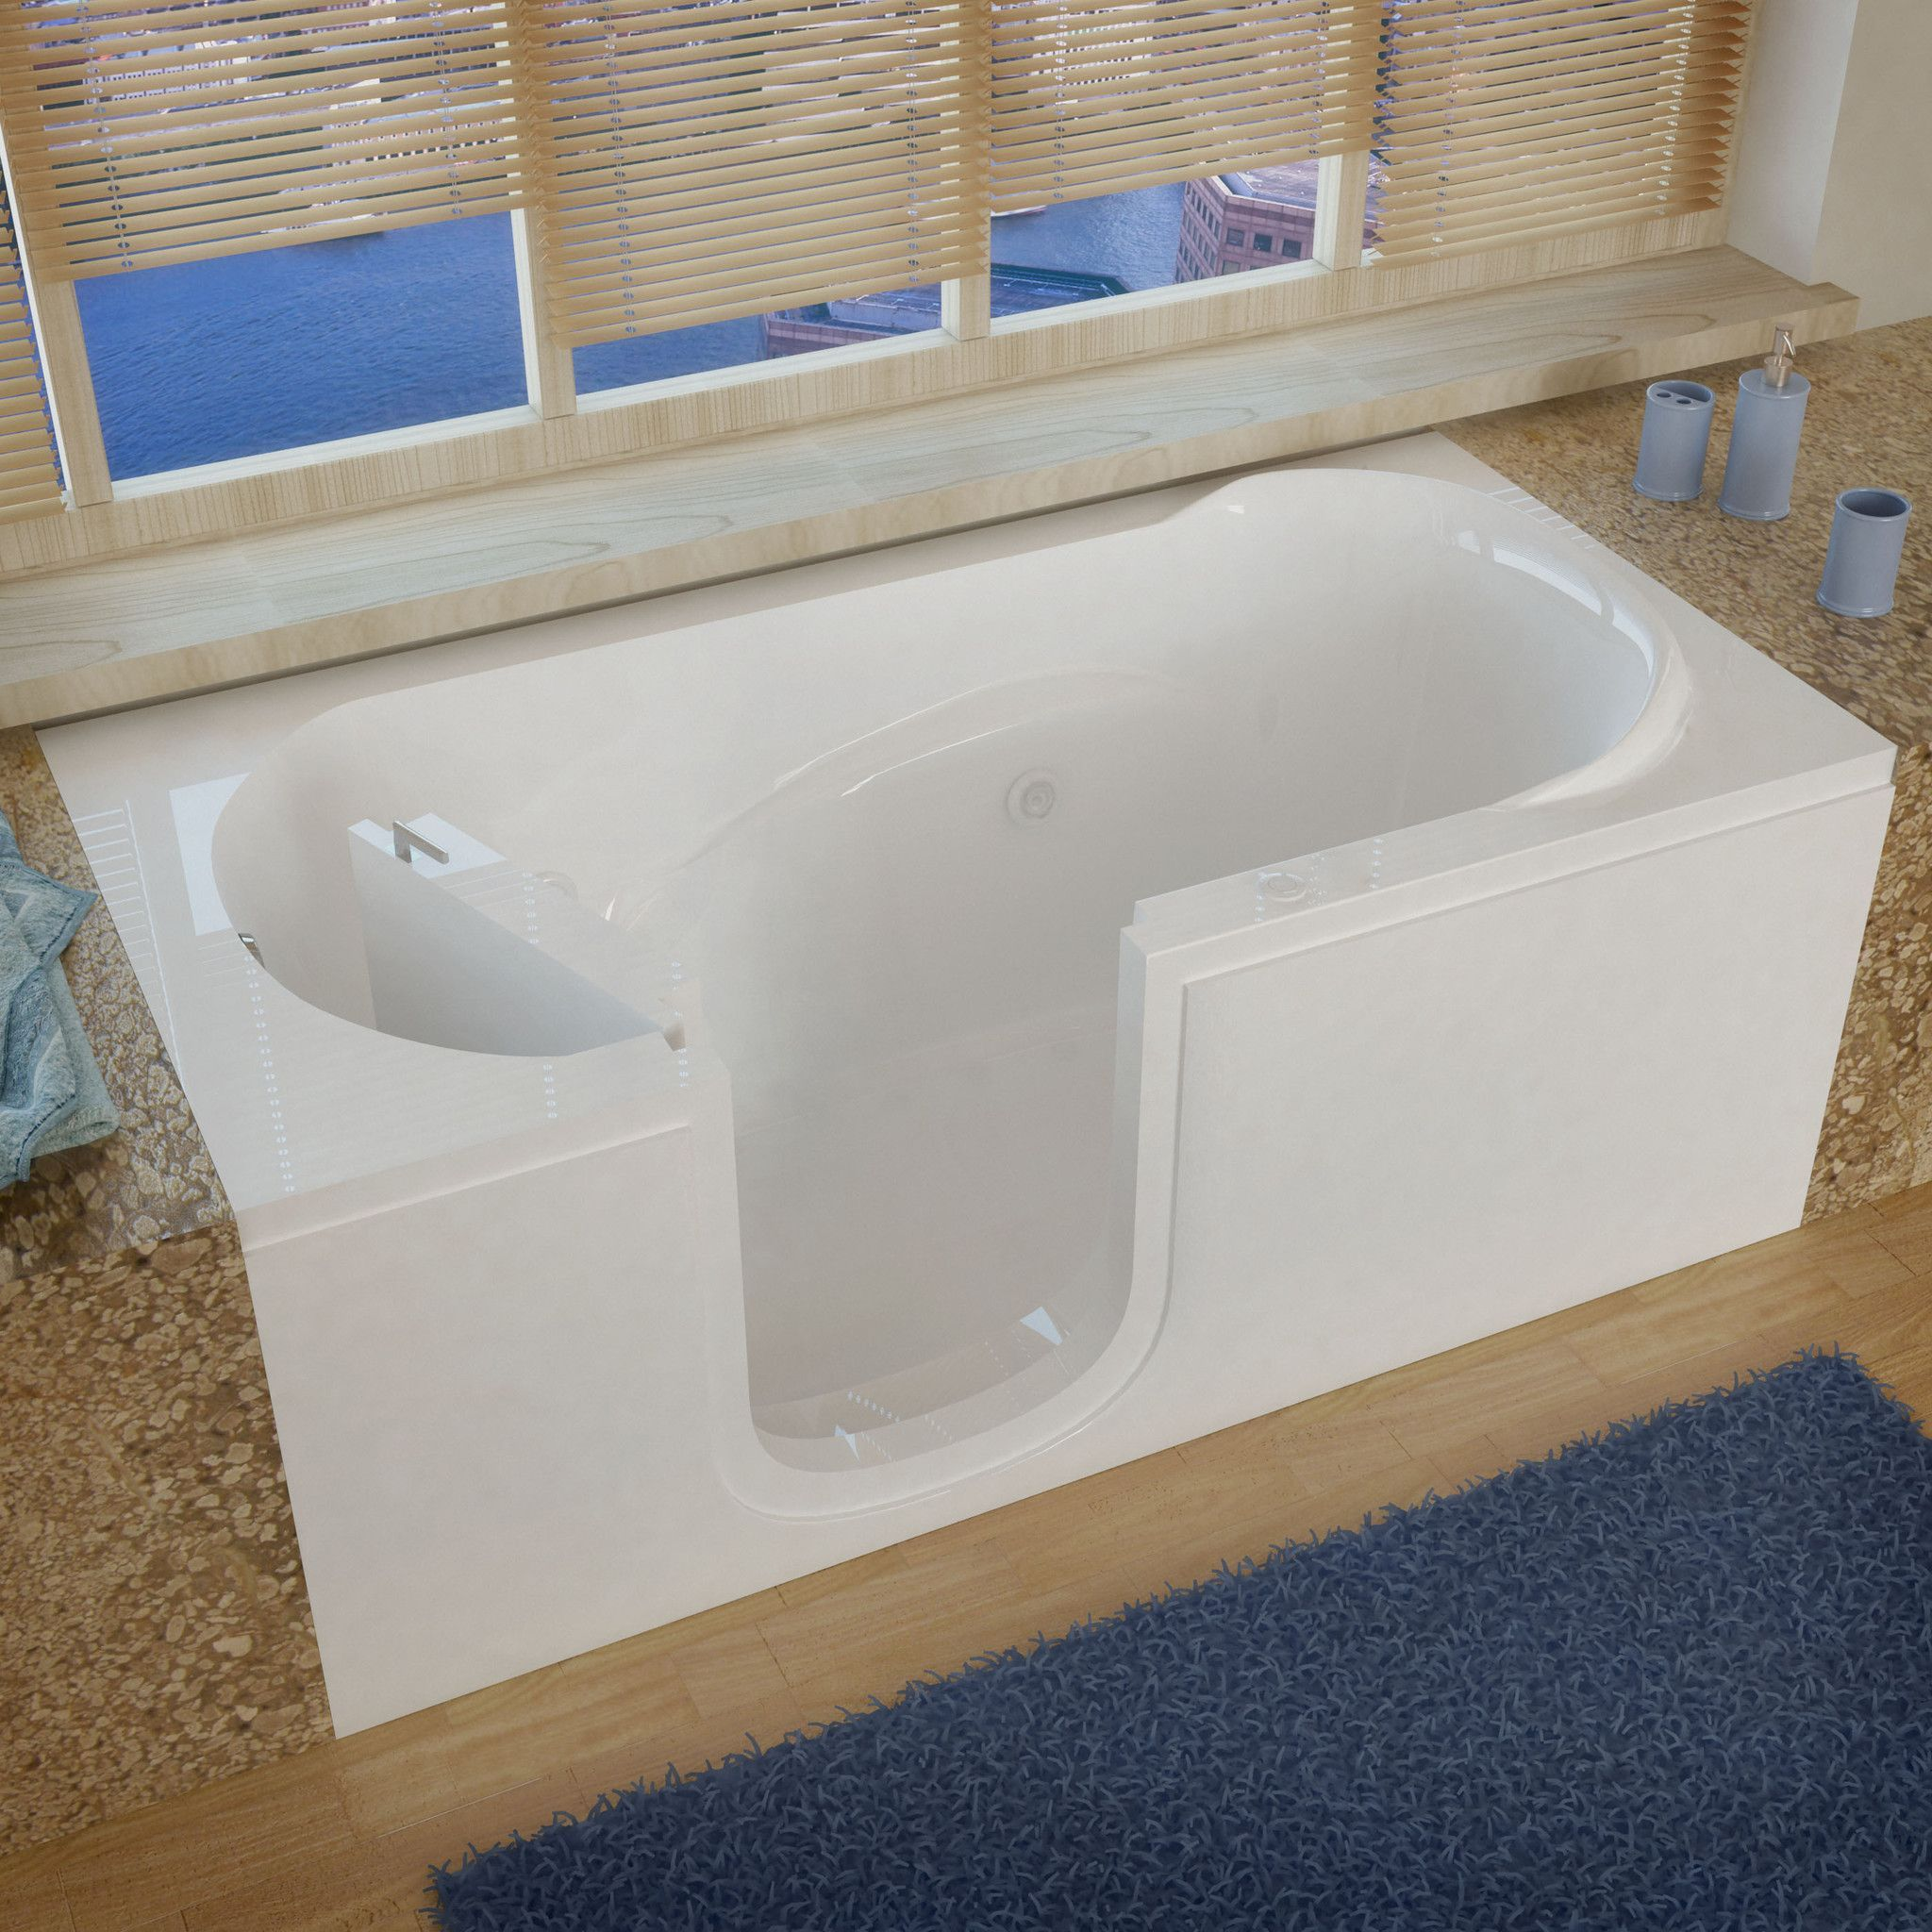 Venzi VZSI3060LWH 30x60 Left Drain White Whirlpool Jetted Step In ...